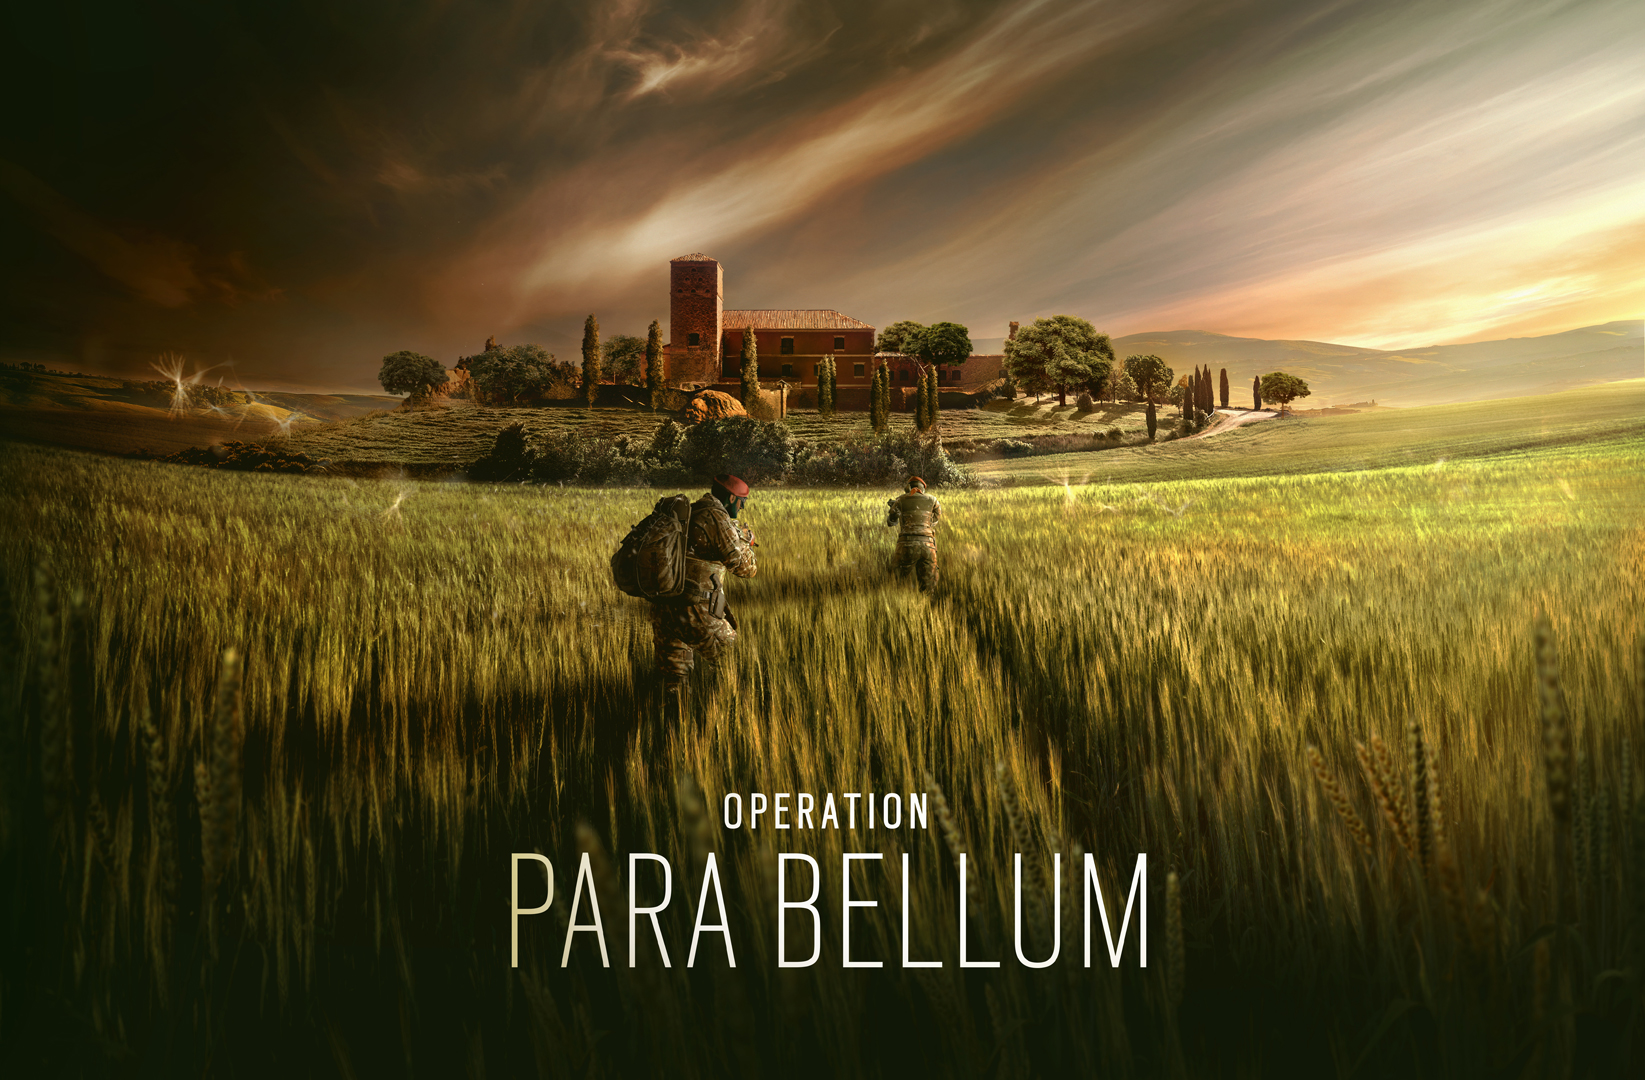 http://www.idgtv.es/archivos/201805/rainbow-six-siege-operation-para-bellum-art.jpg